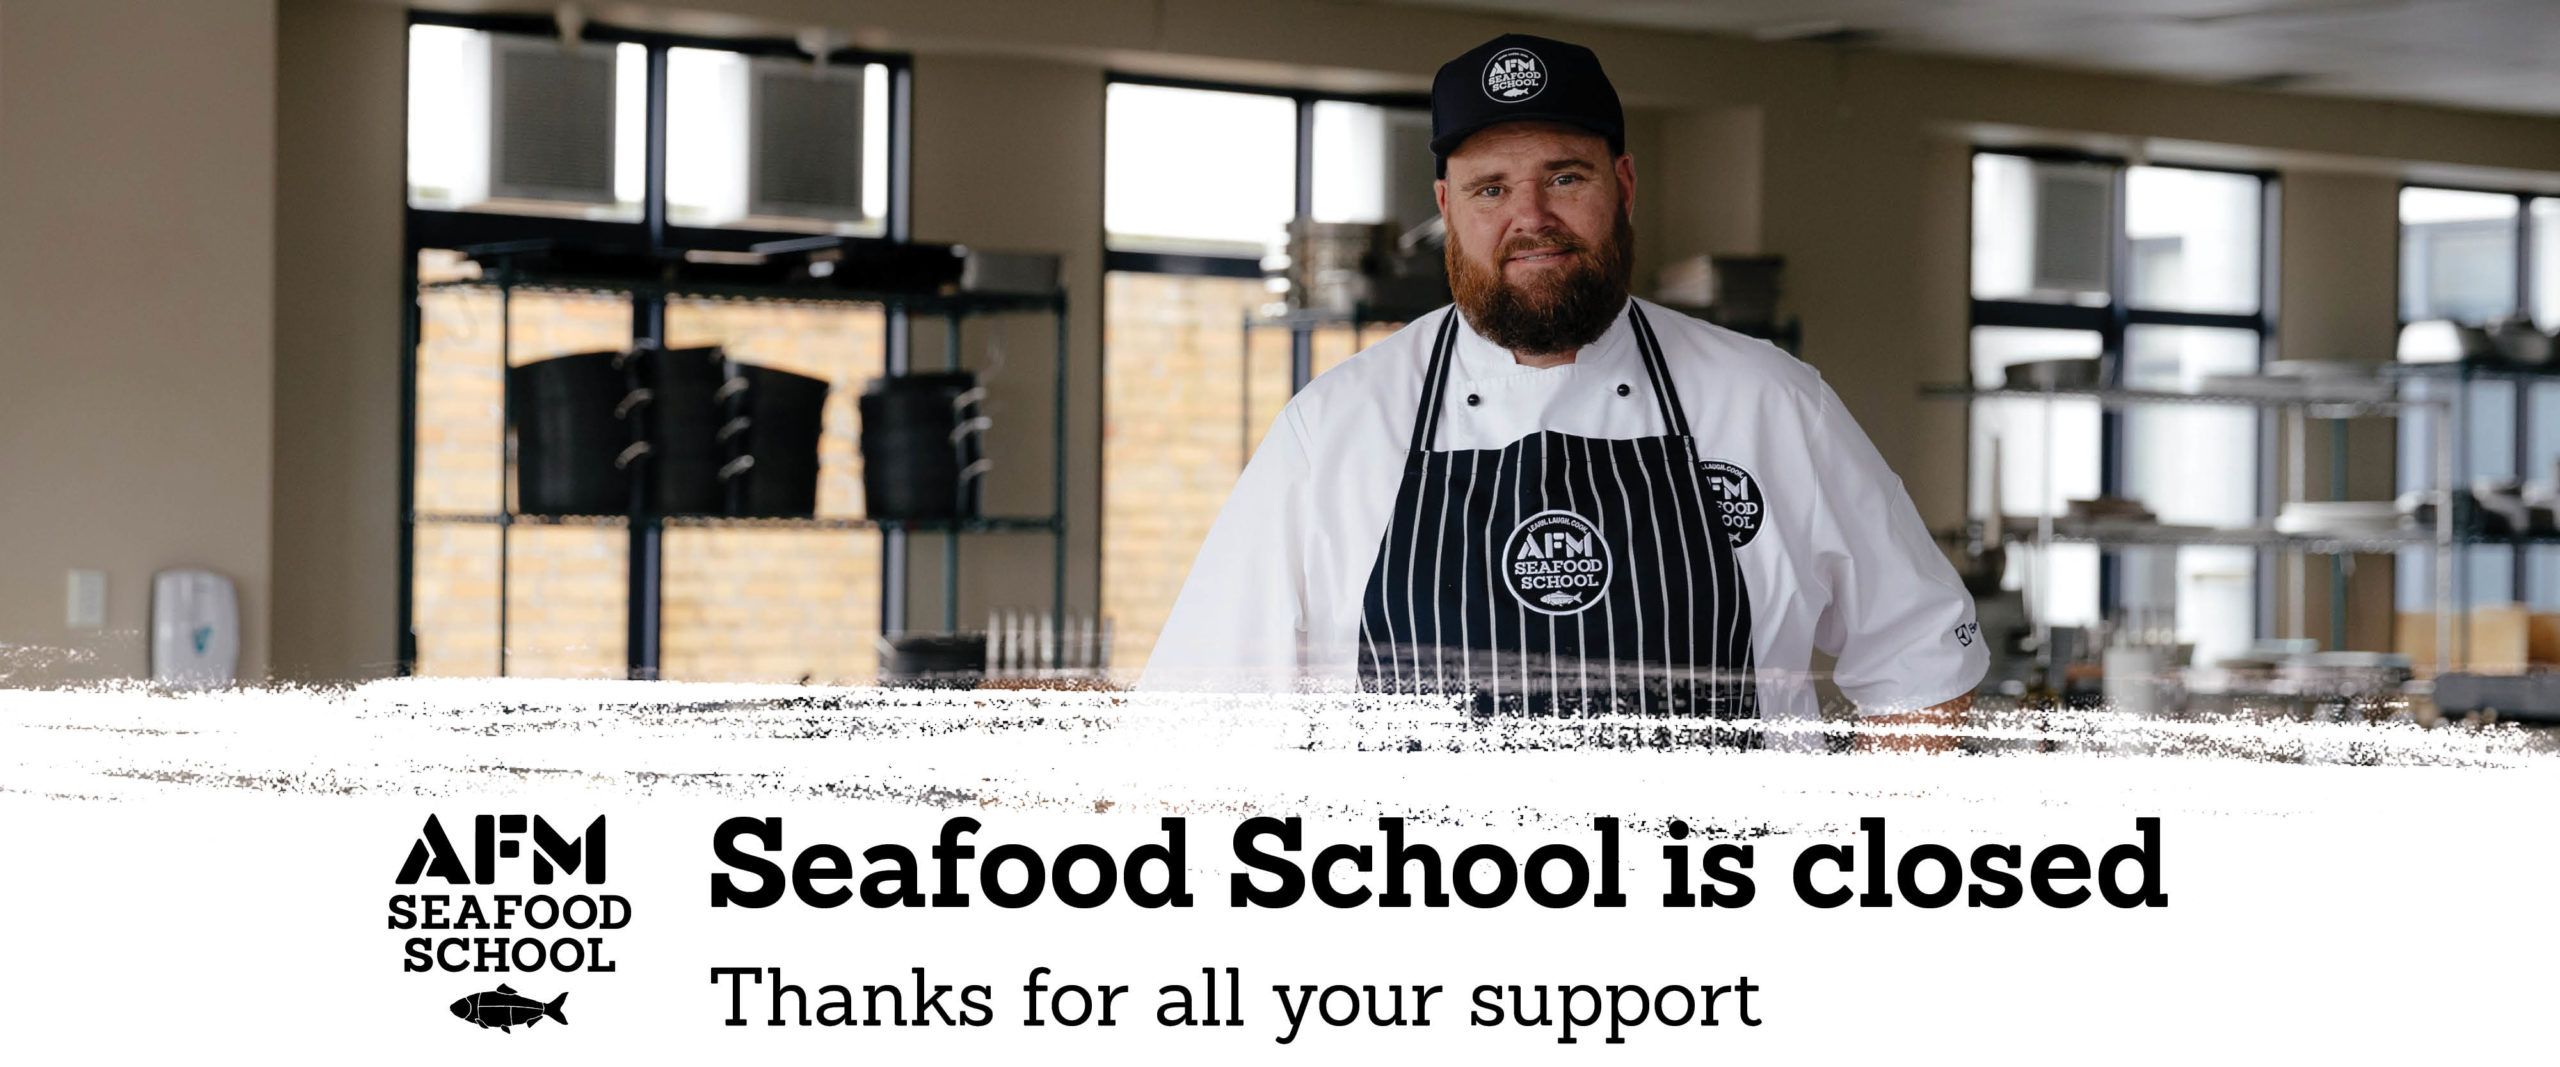 AFM Seafood School is now closed